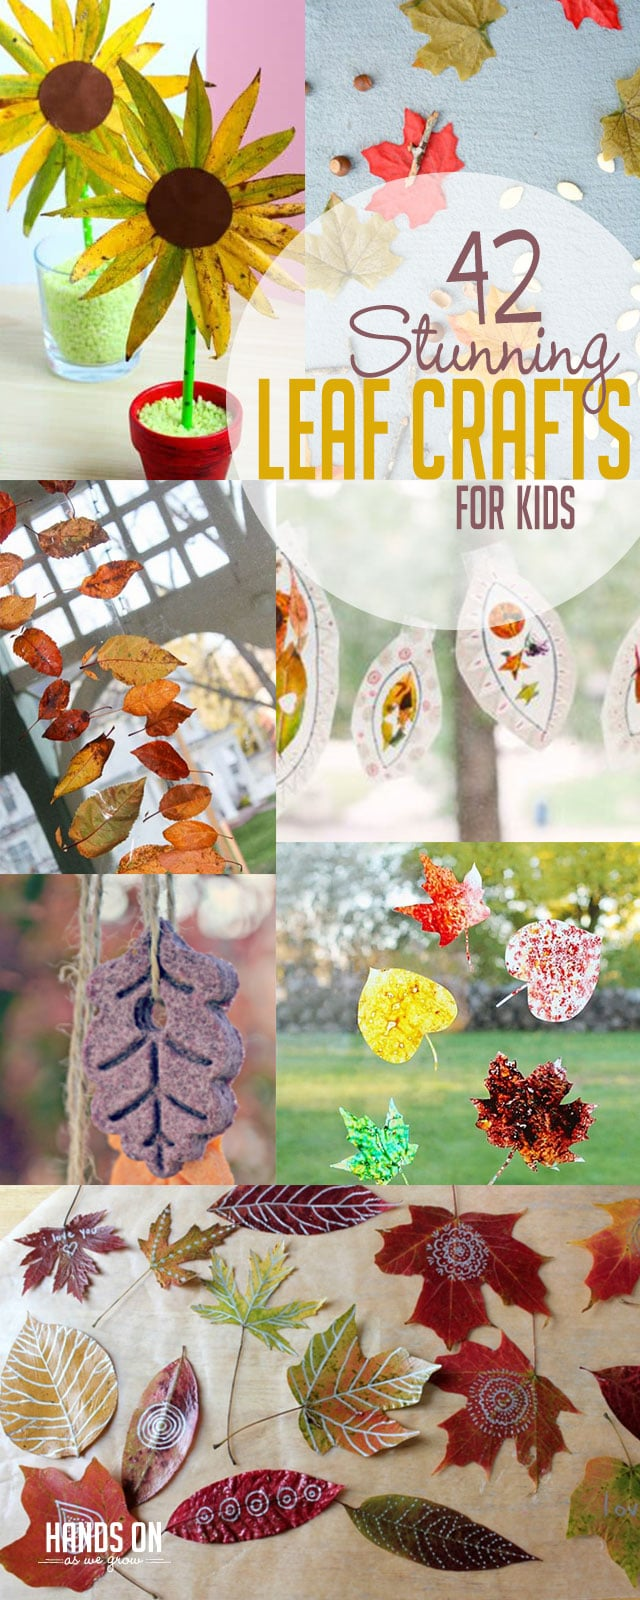 Check out fun leaf crafts for kids to make!